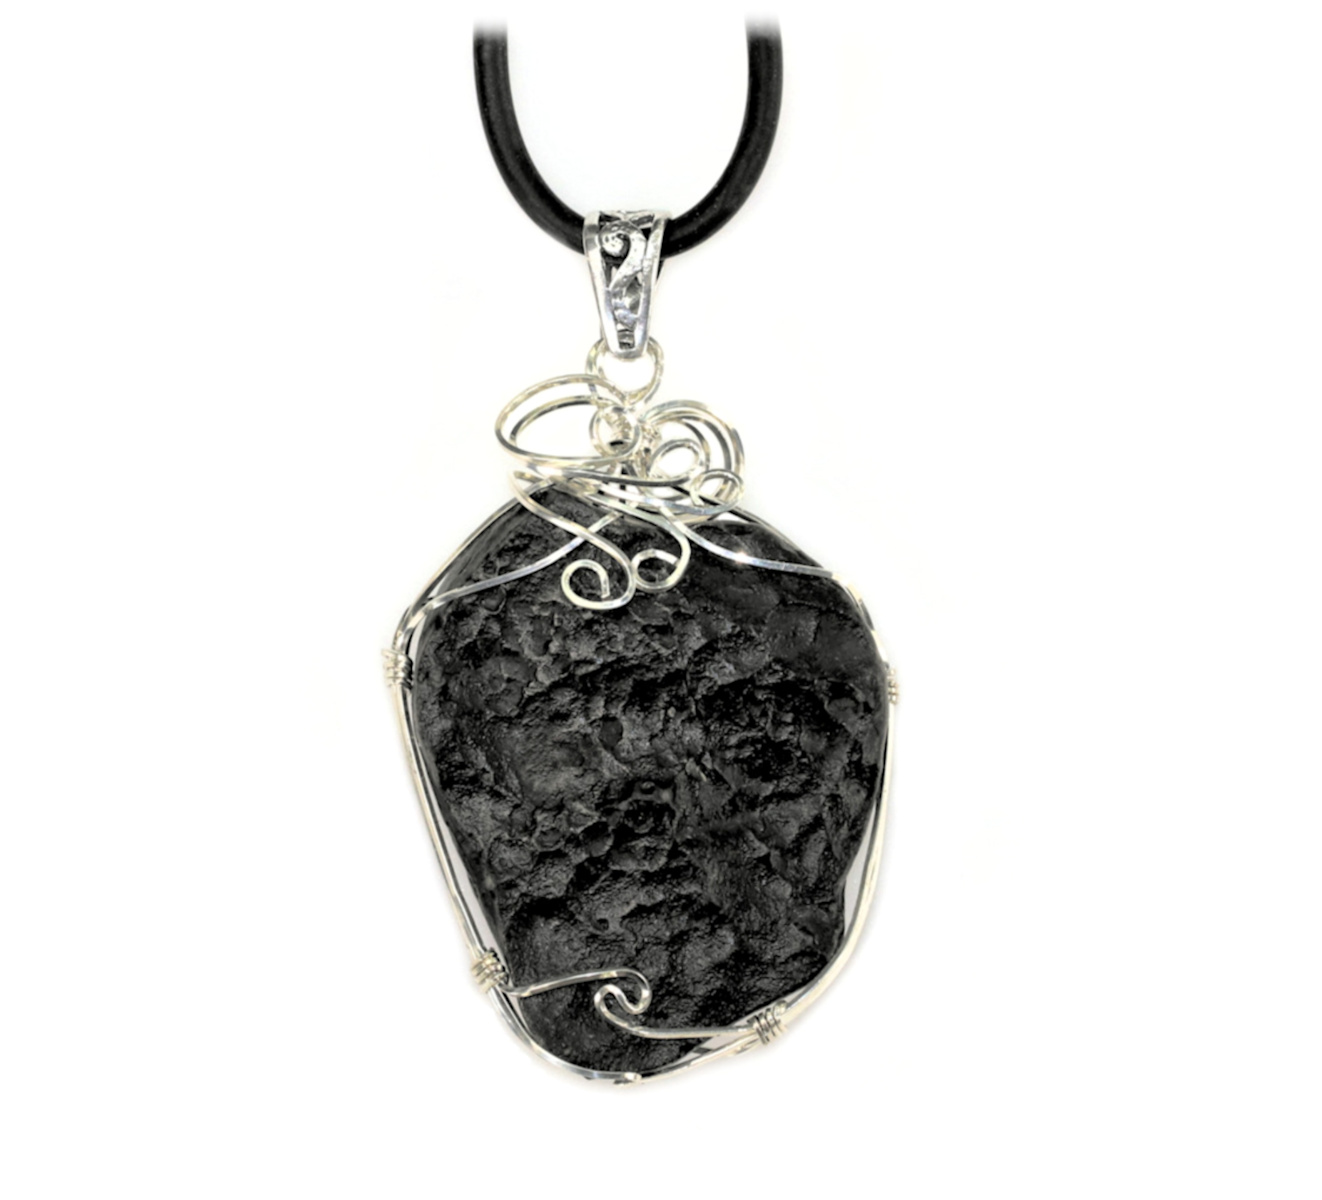 -- stone size necklace 34 x 33 mm  1.34 x 1.30 inch Tektite on leather strap  cotton cord